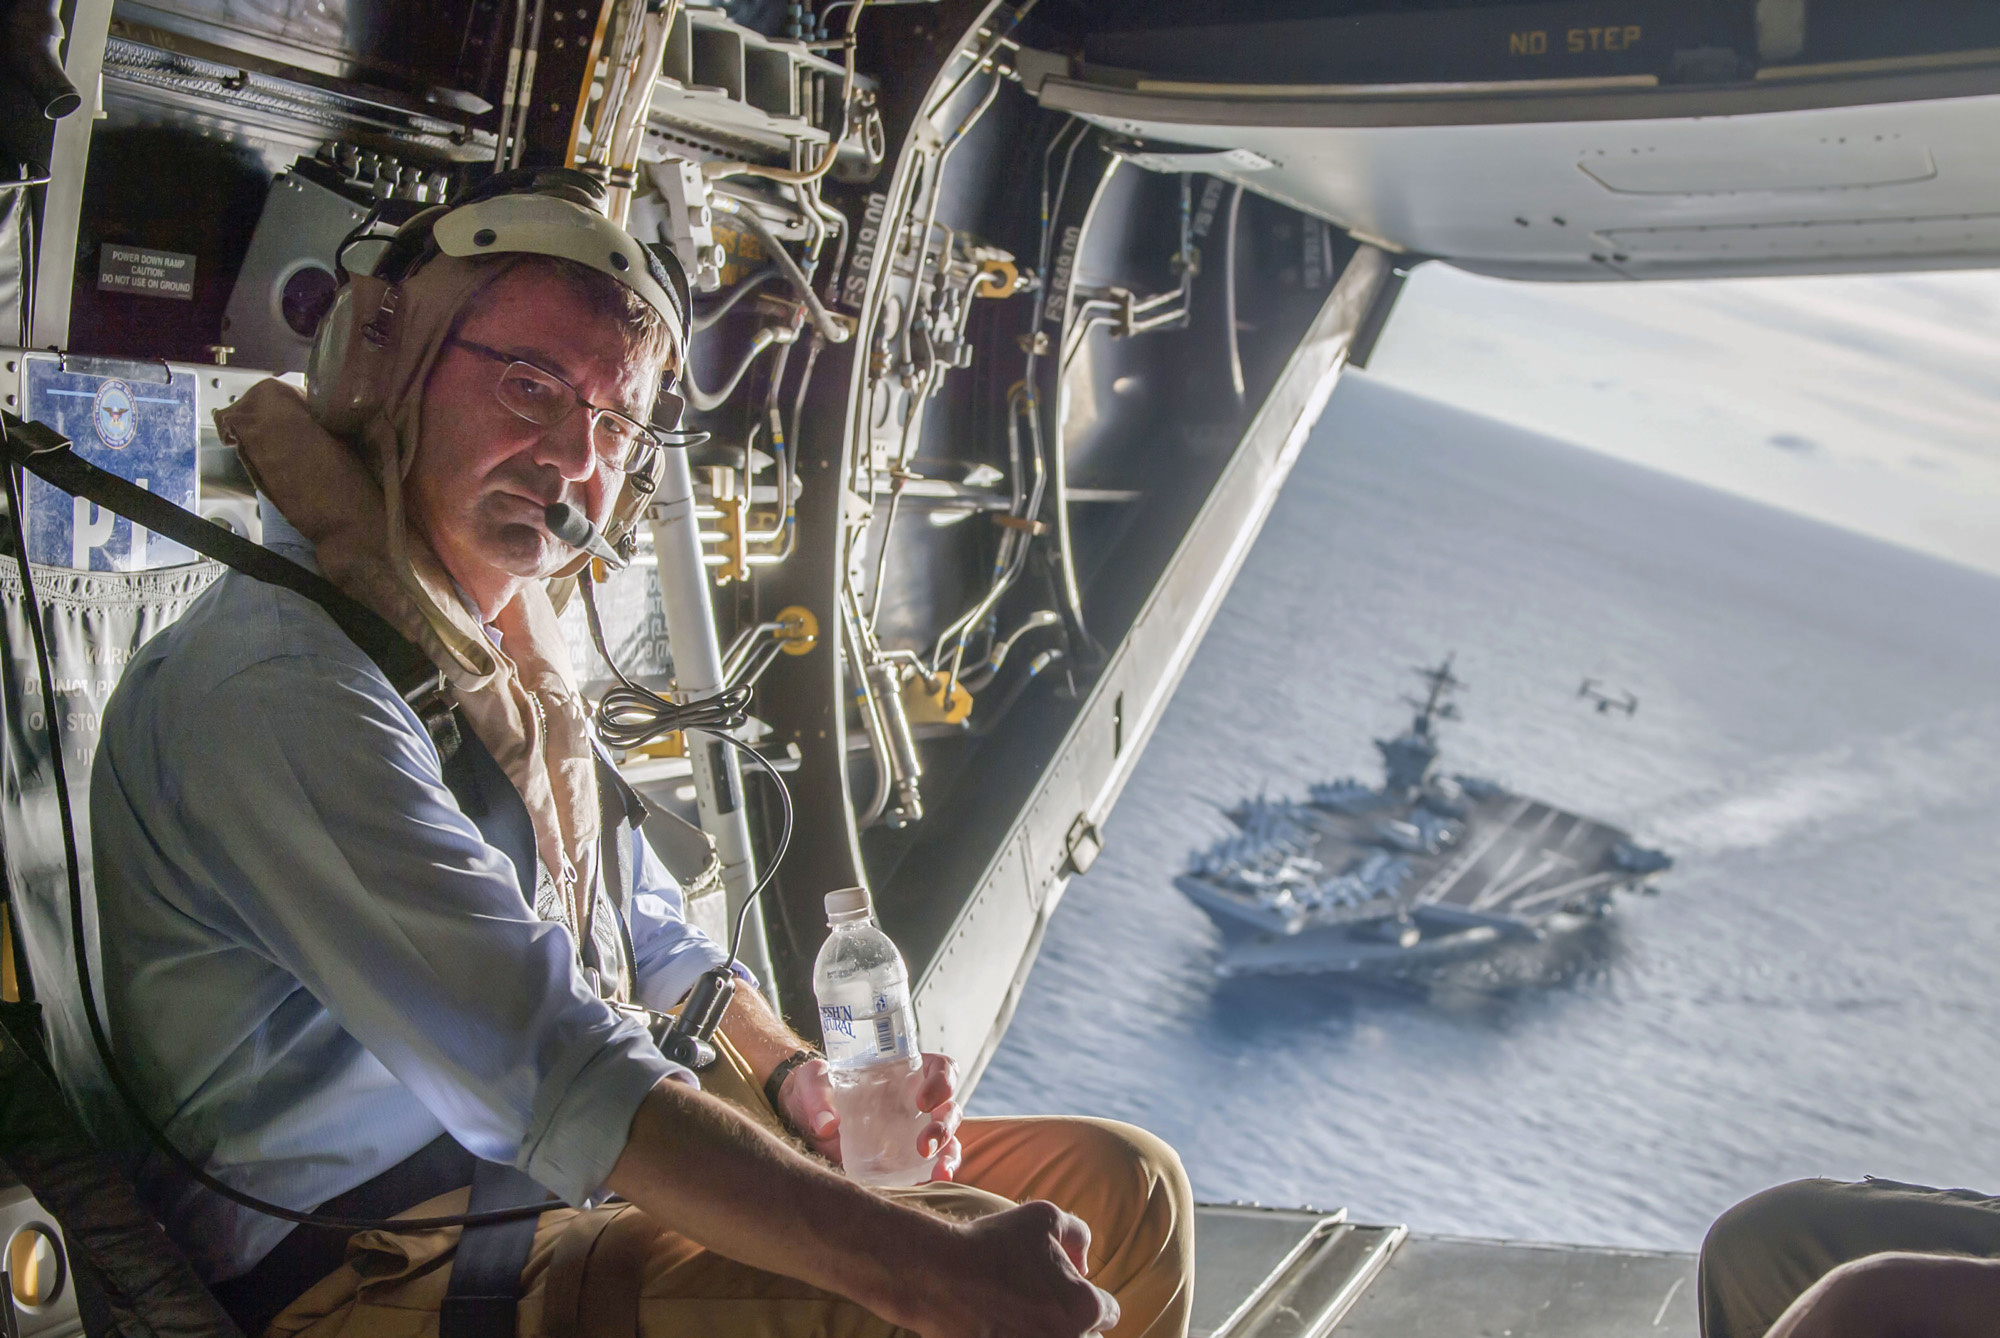 pentagon-chief-takes-jab-china-aircraft-carrier-stop